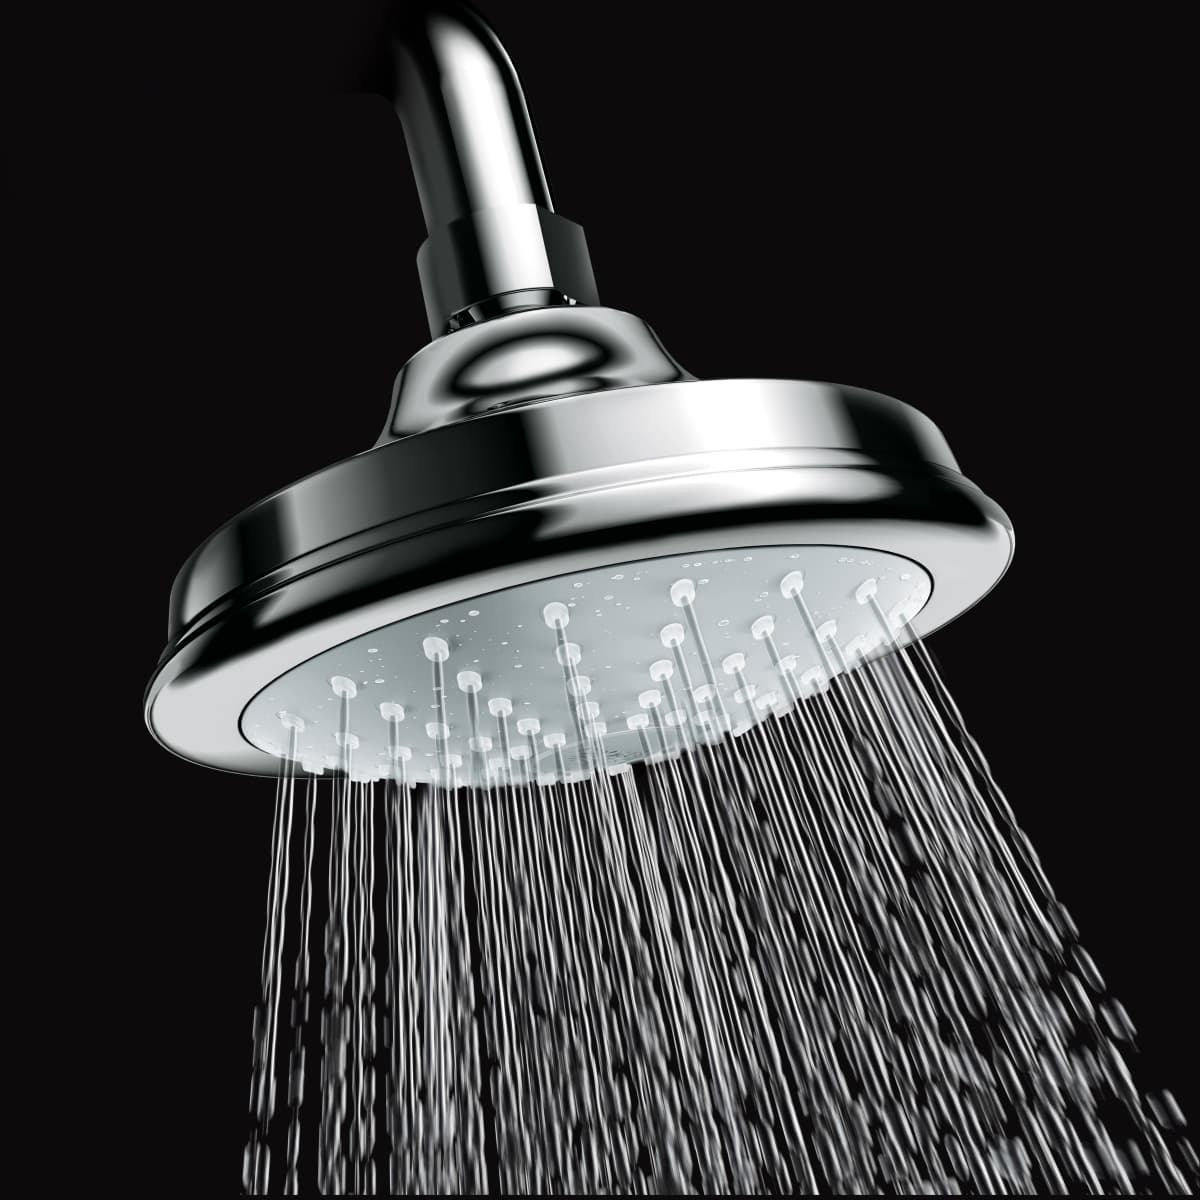 Grohe 27811000 Starlight Chrome Euphoria Rustic 5 Shower Head With Dreamspray Technology 2 0 Gpm Faucetdirect Com